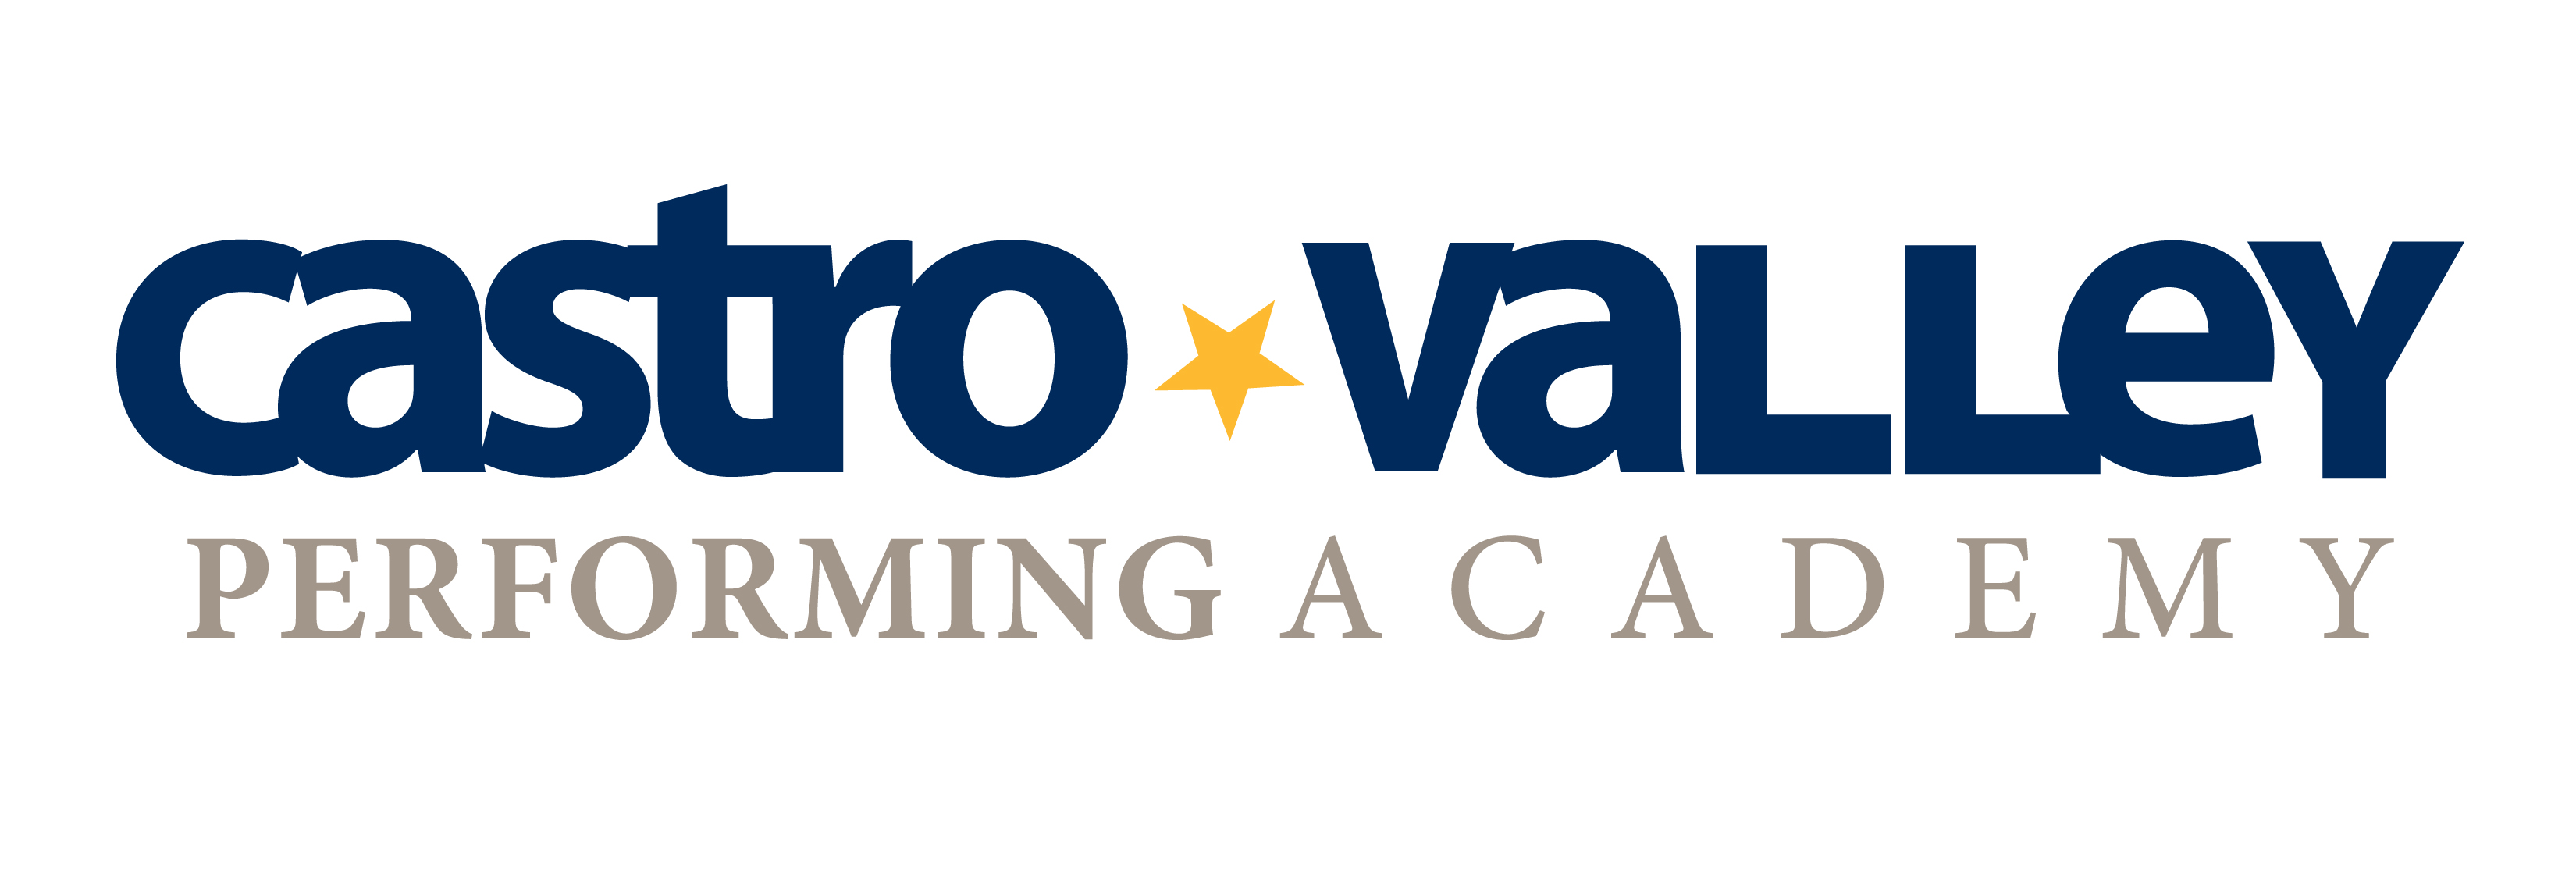 CASTRO VALLEY PA 2017_ COLOR Logo